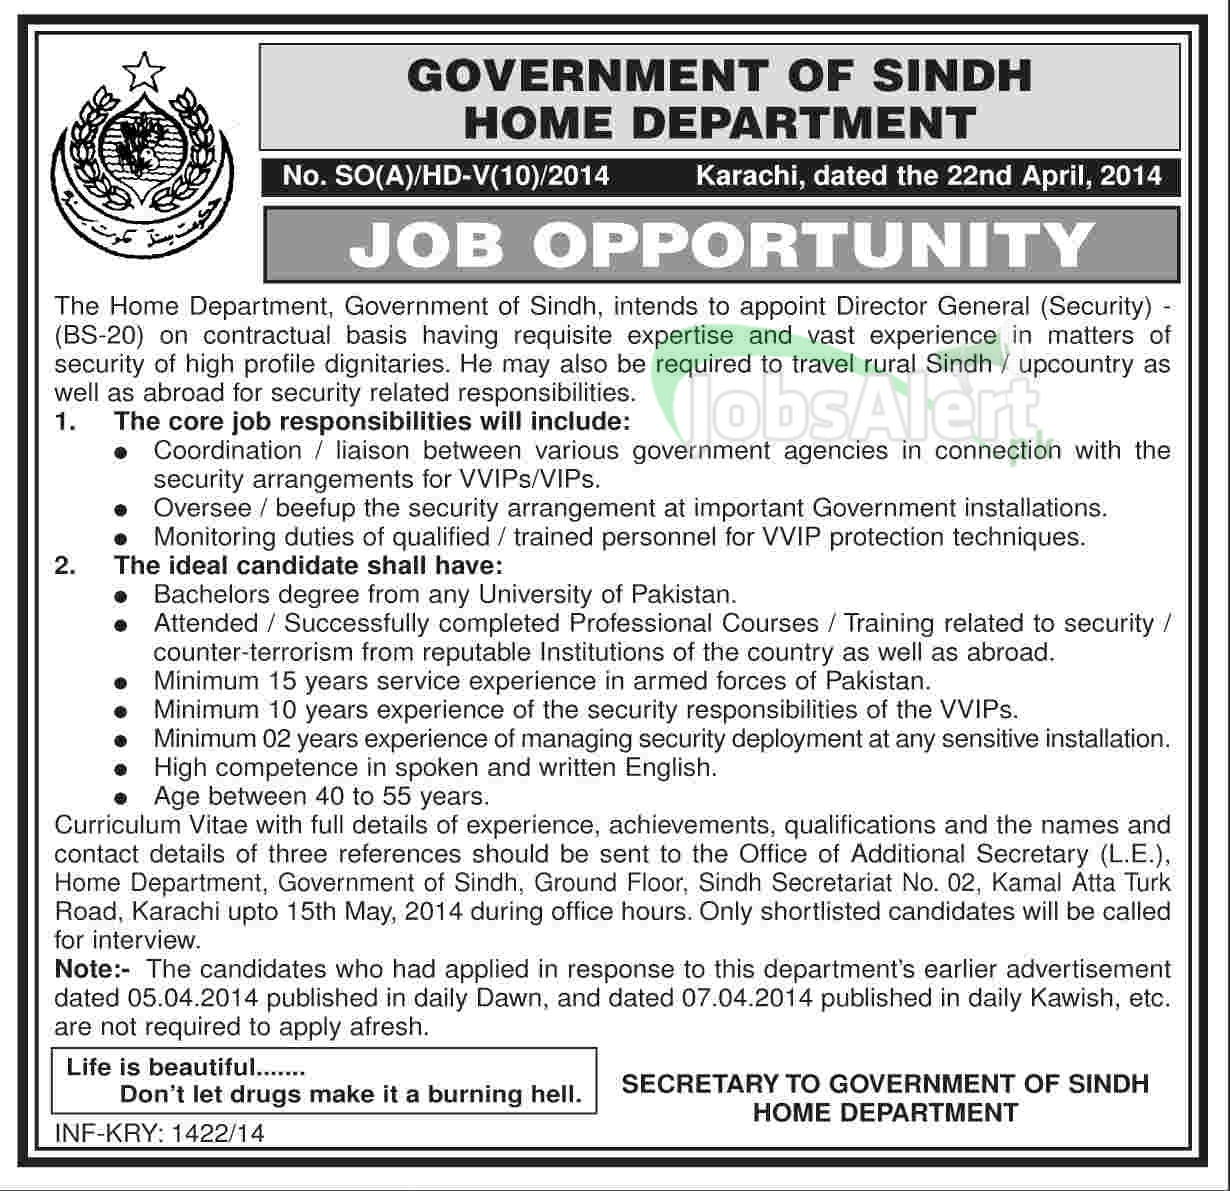 Home Department Government of Sindh Jobs 2014 Karachi